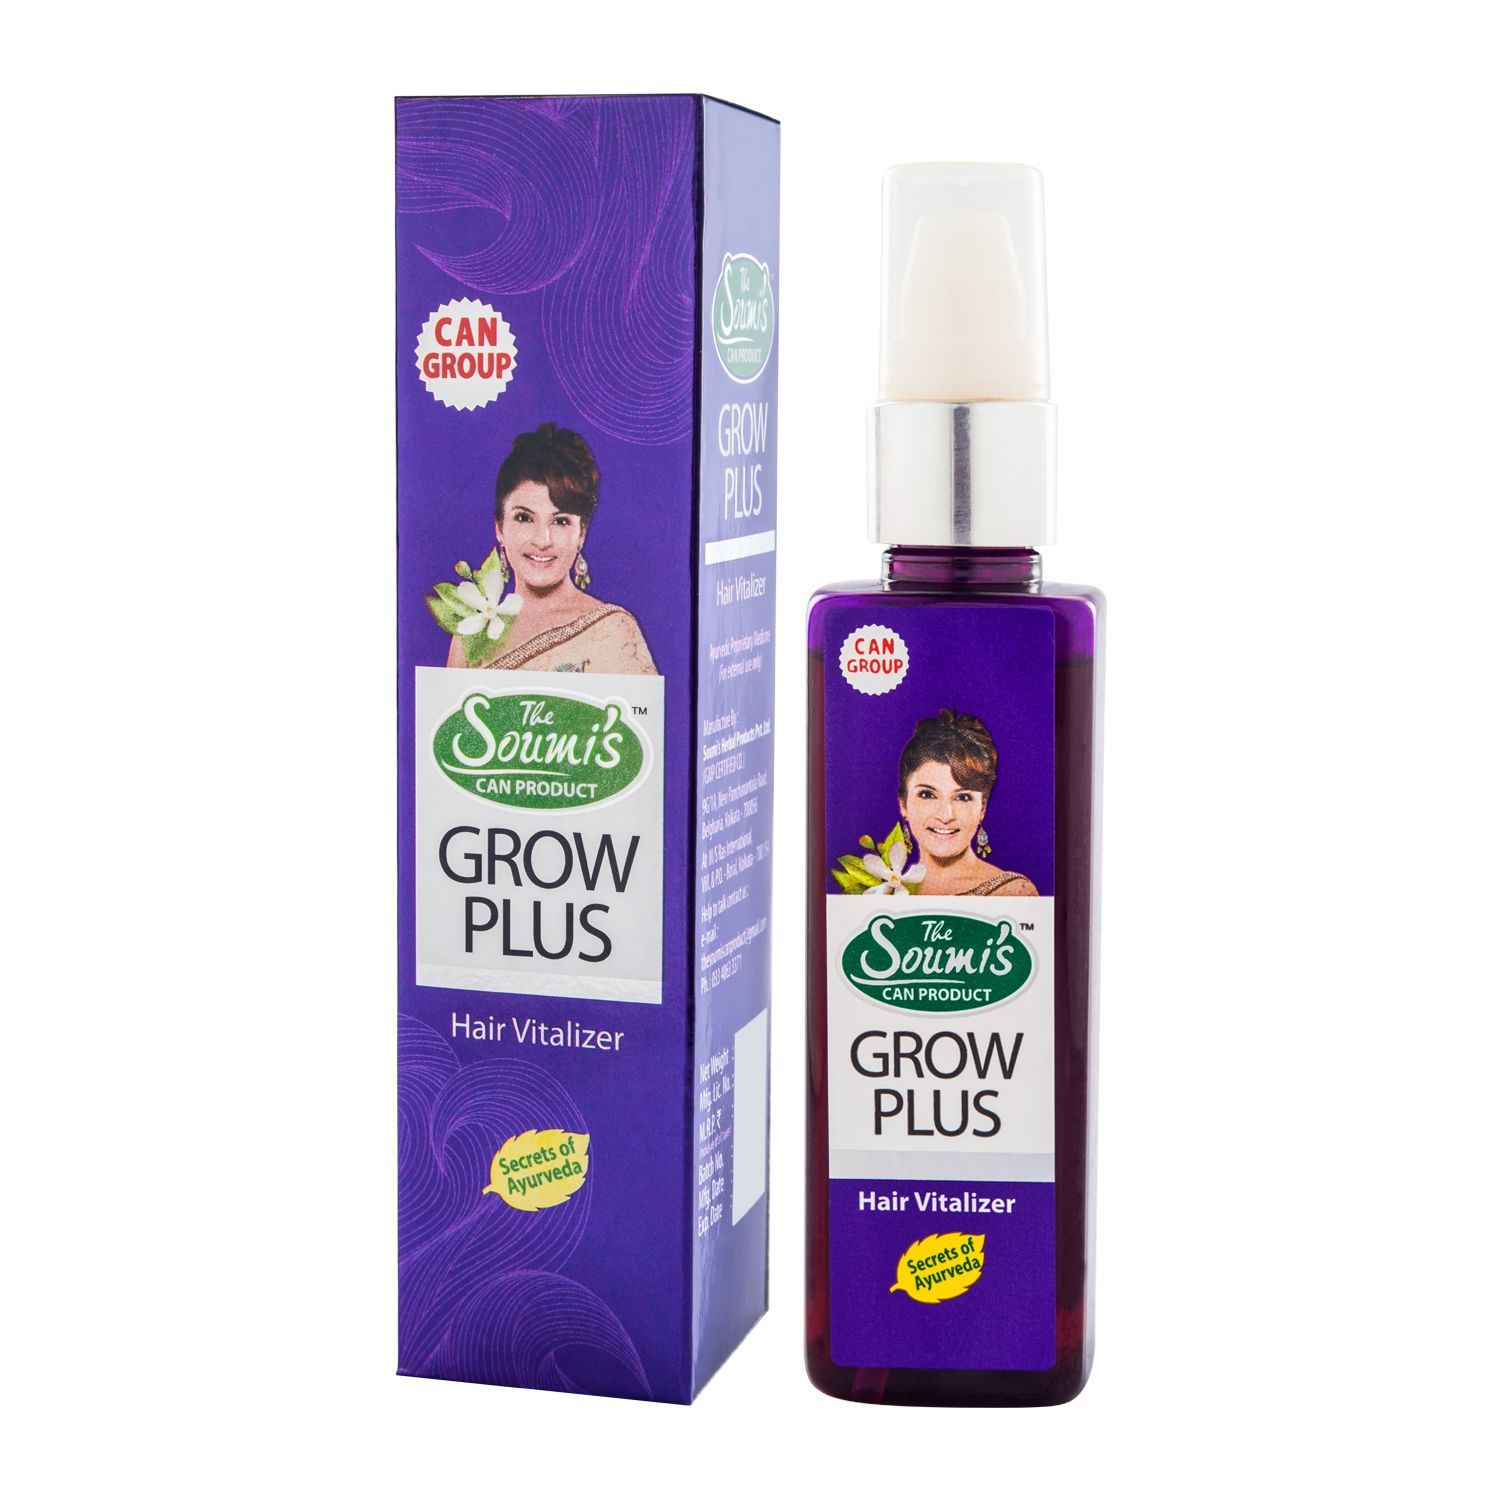 GROW PLUS Hair Vitalizer Prevents HAIR LOSS and helps in